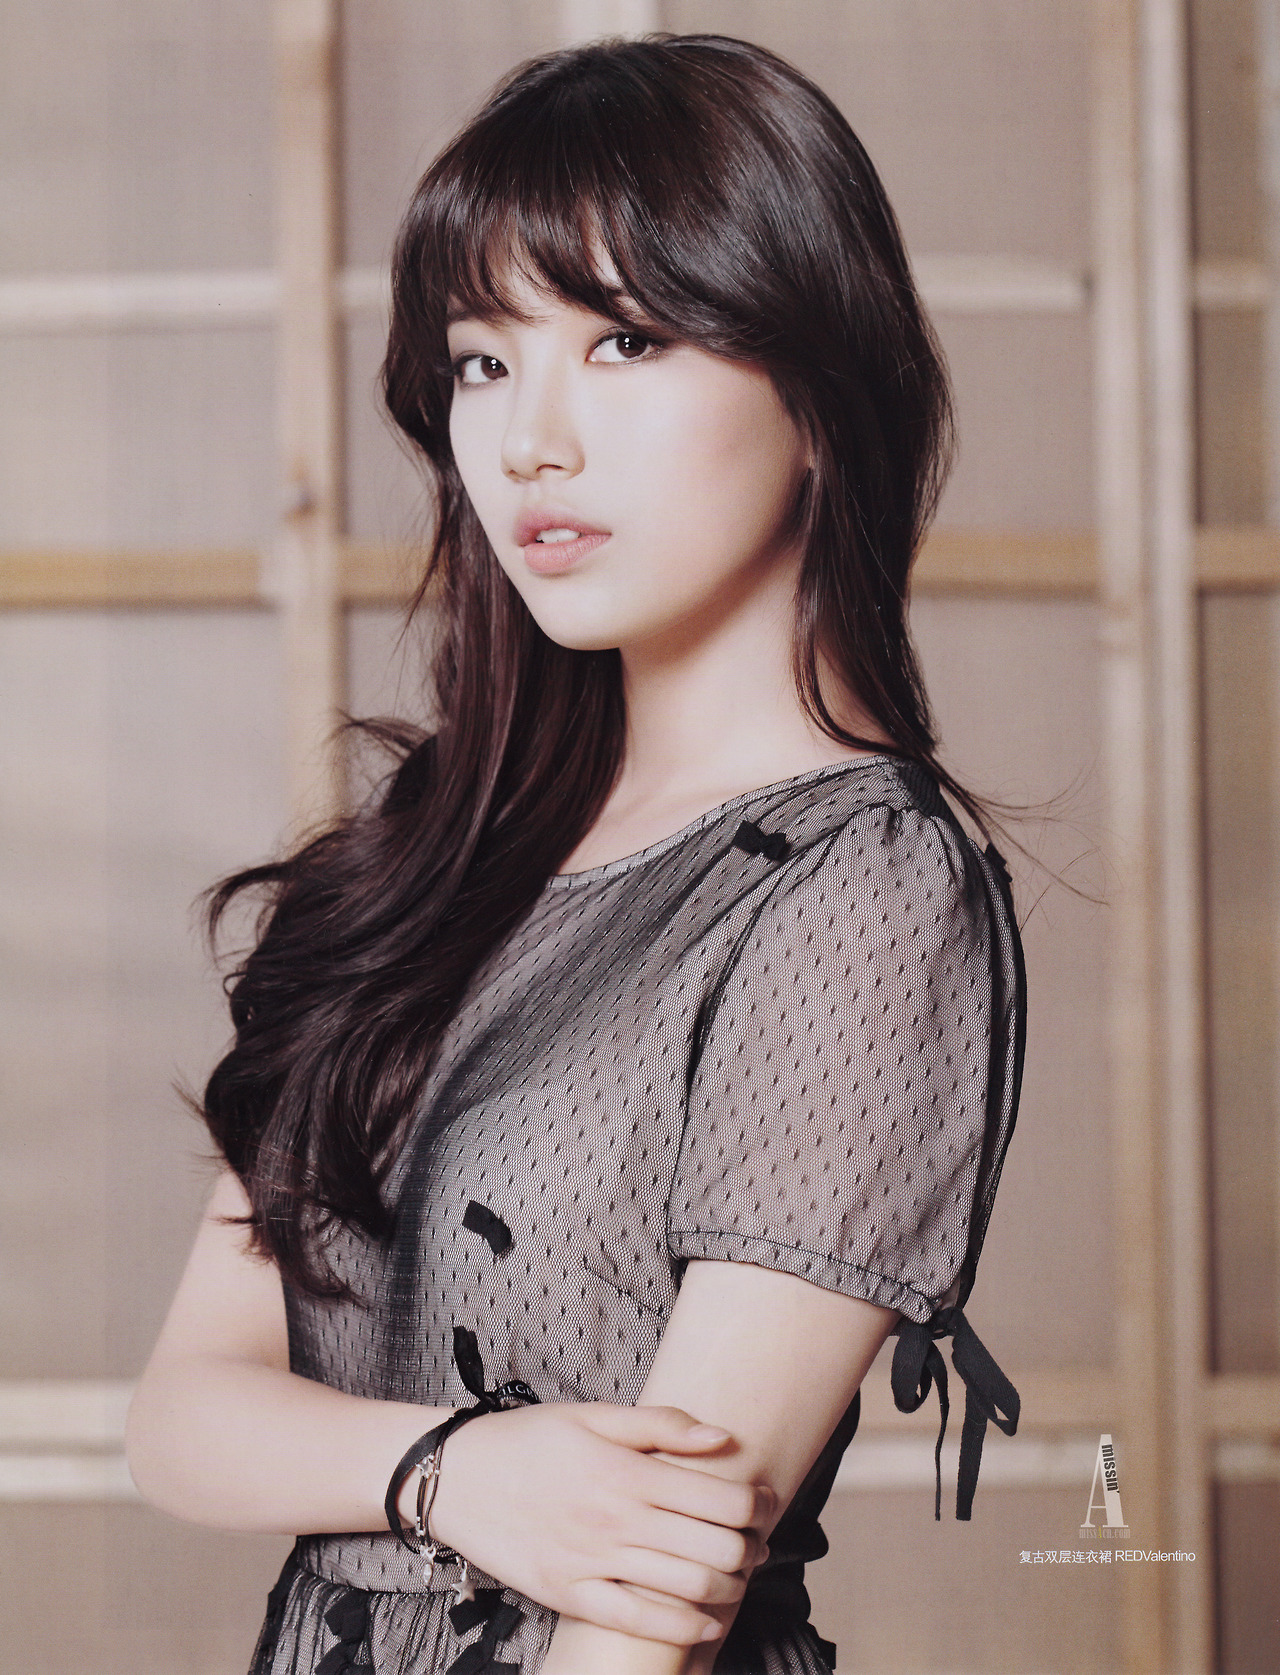 Suzy Profile Kpop Music